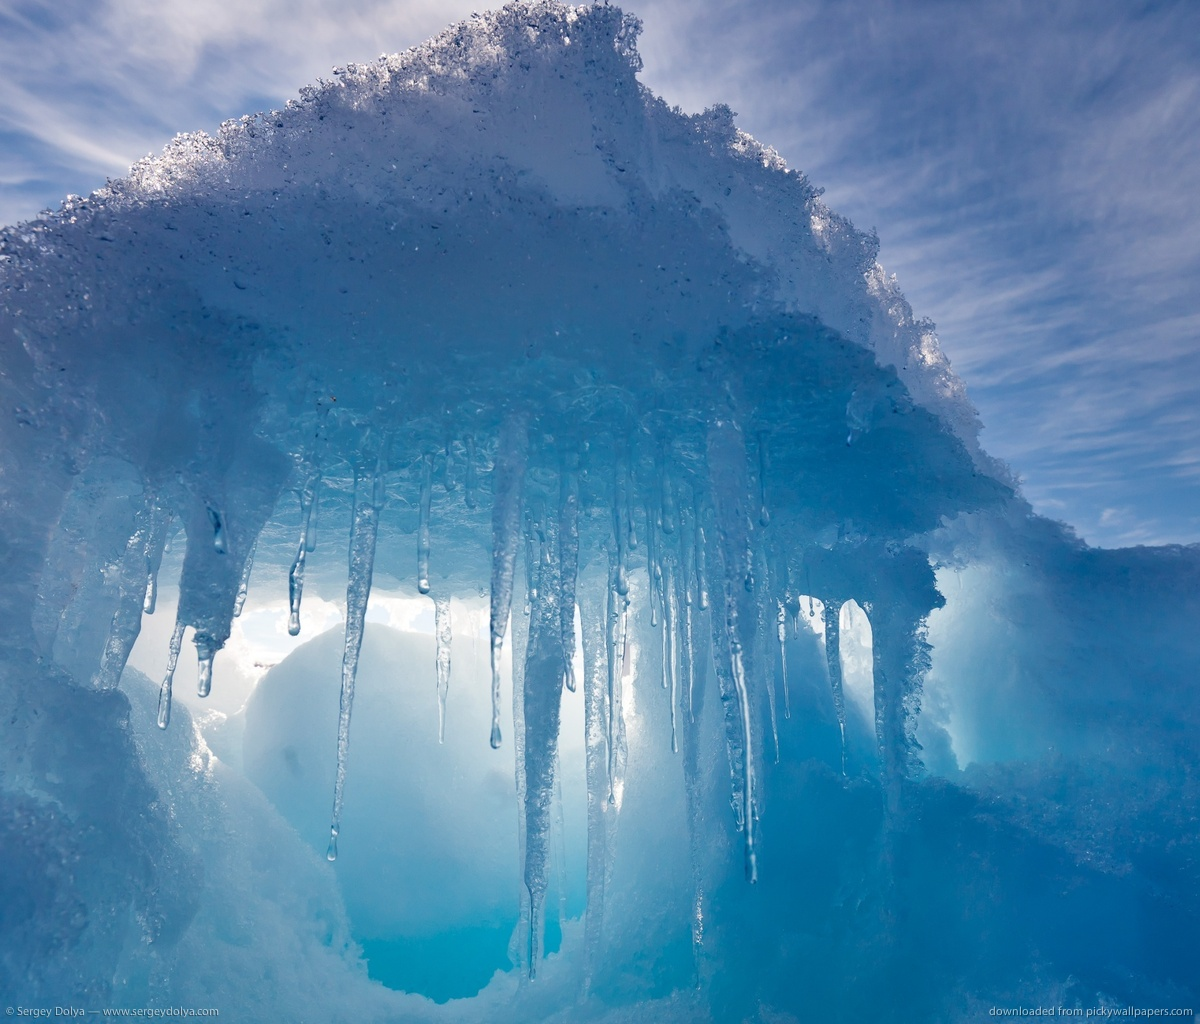 44 Uhd Wallpapers Download Free Amazing Full Hd: Amazing Ice Wallpaper